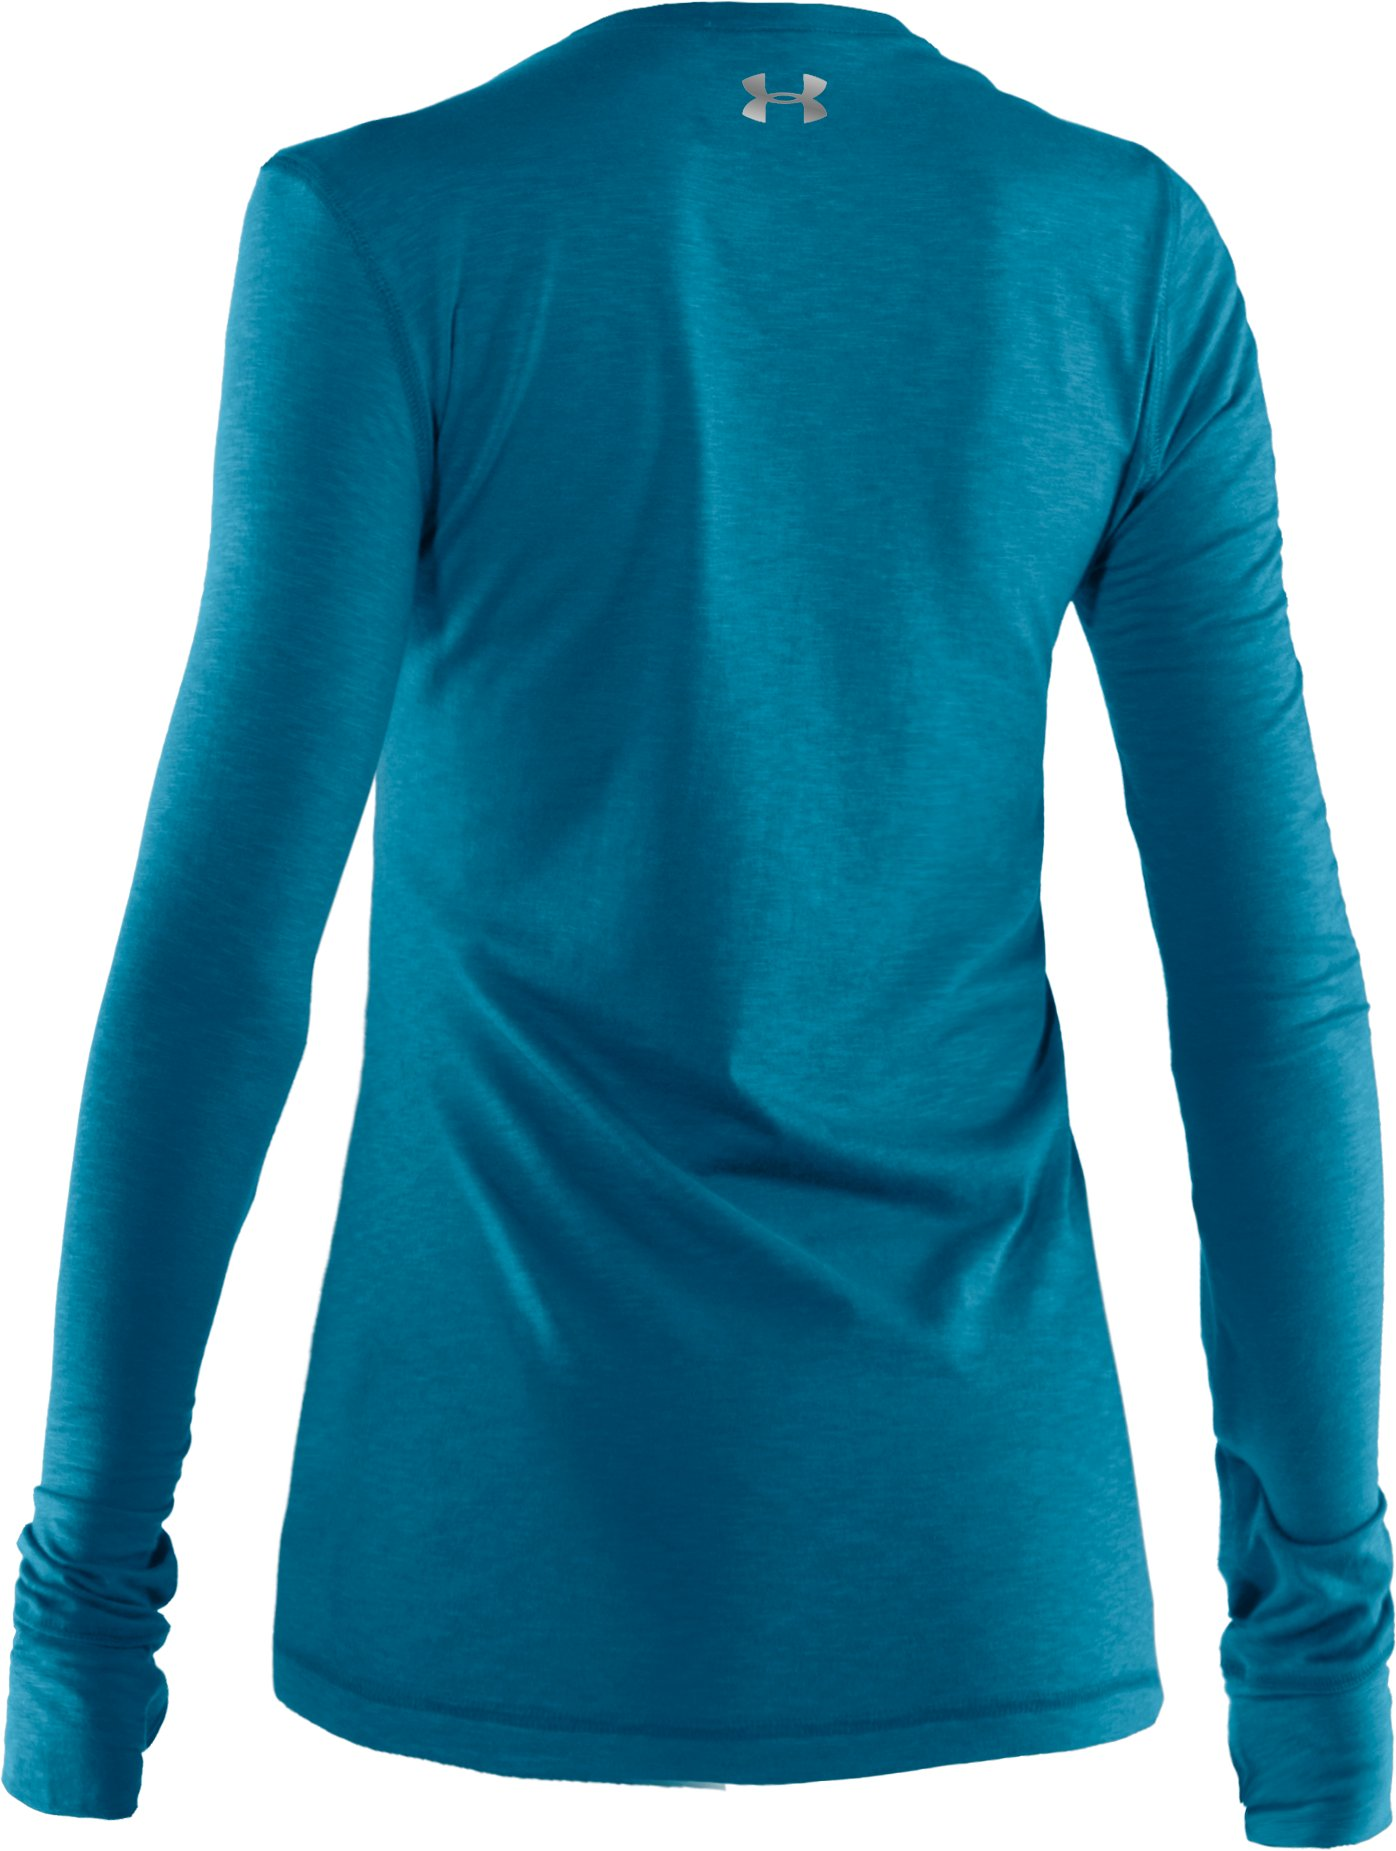 Women's UA Charm Long Sleeve Shirt, Break